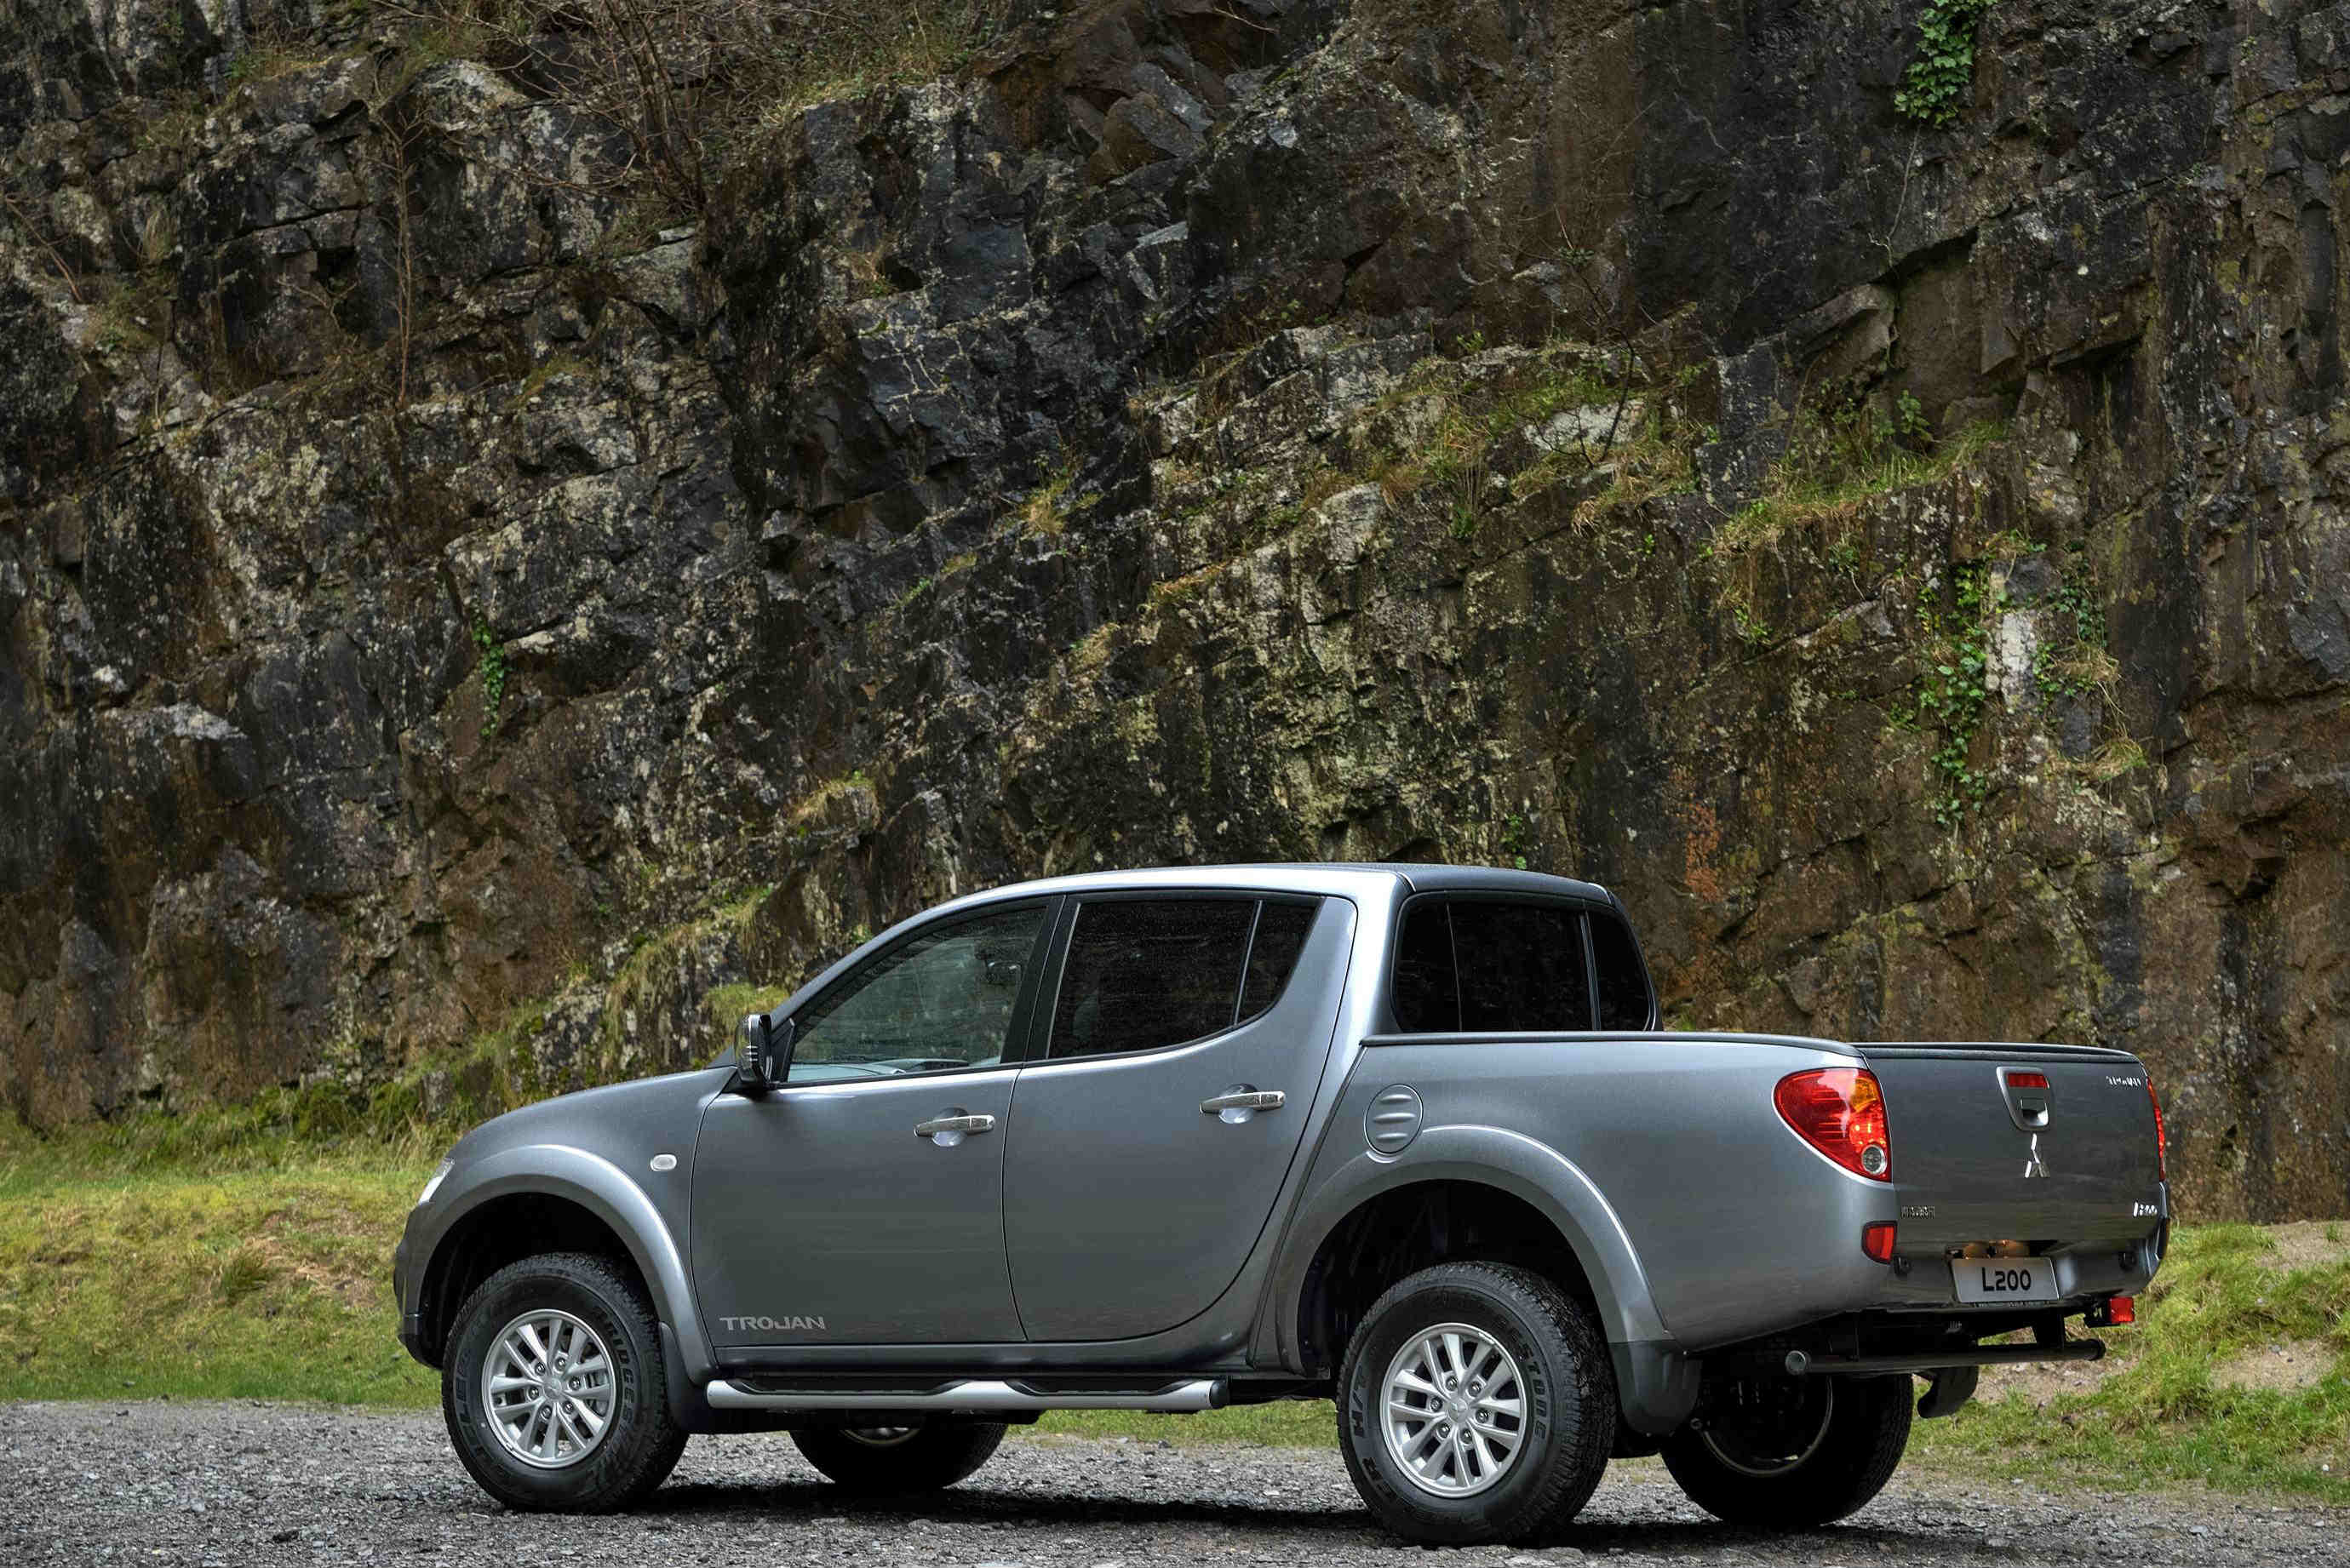 L200 pickup truck buyers guide